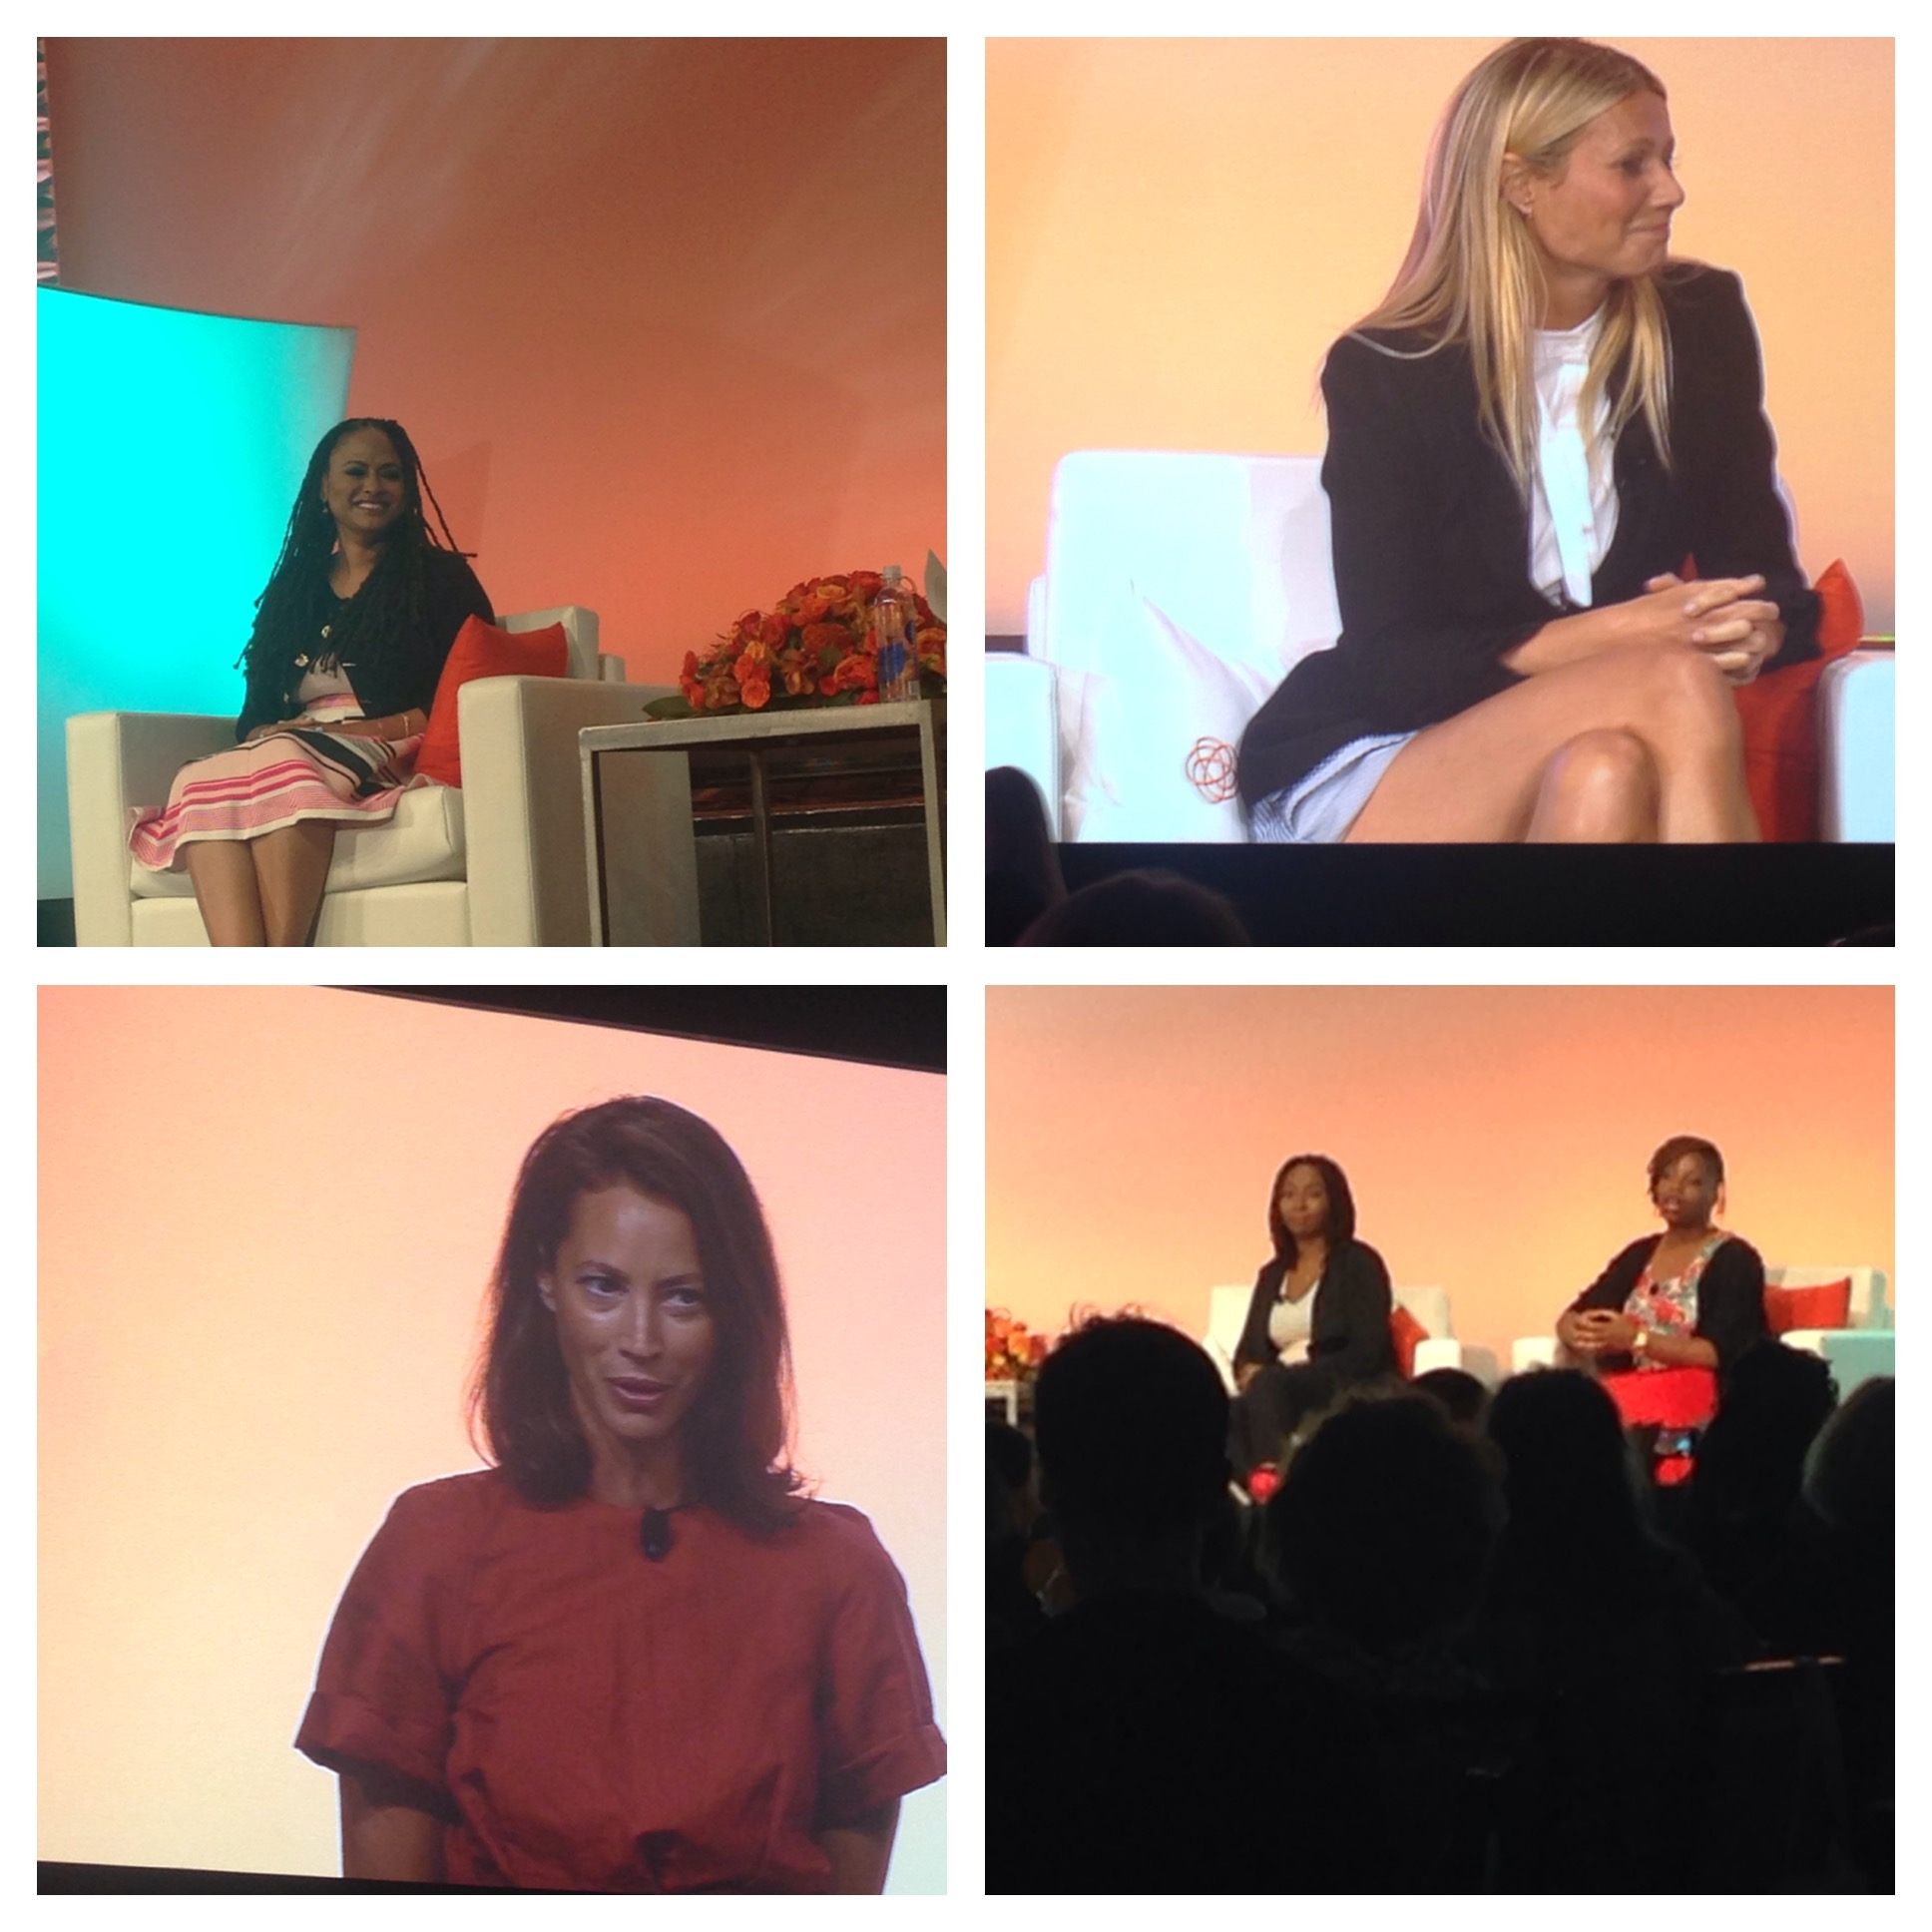 BlogHer15: Experts Among Us Keynote speakers included award-winning director of Selma, Ava DuVernay, Aca  demy Award-winning actress and Founder of goop, Inc., Gwyneth Paltrow, model and founder of Every Mother Counts, Christy Turlington Burns and#BlackLivesMatter Co-founders Patrisse Cullors and Opal Tometi.